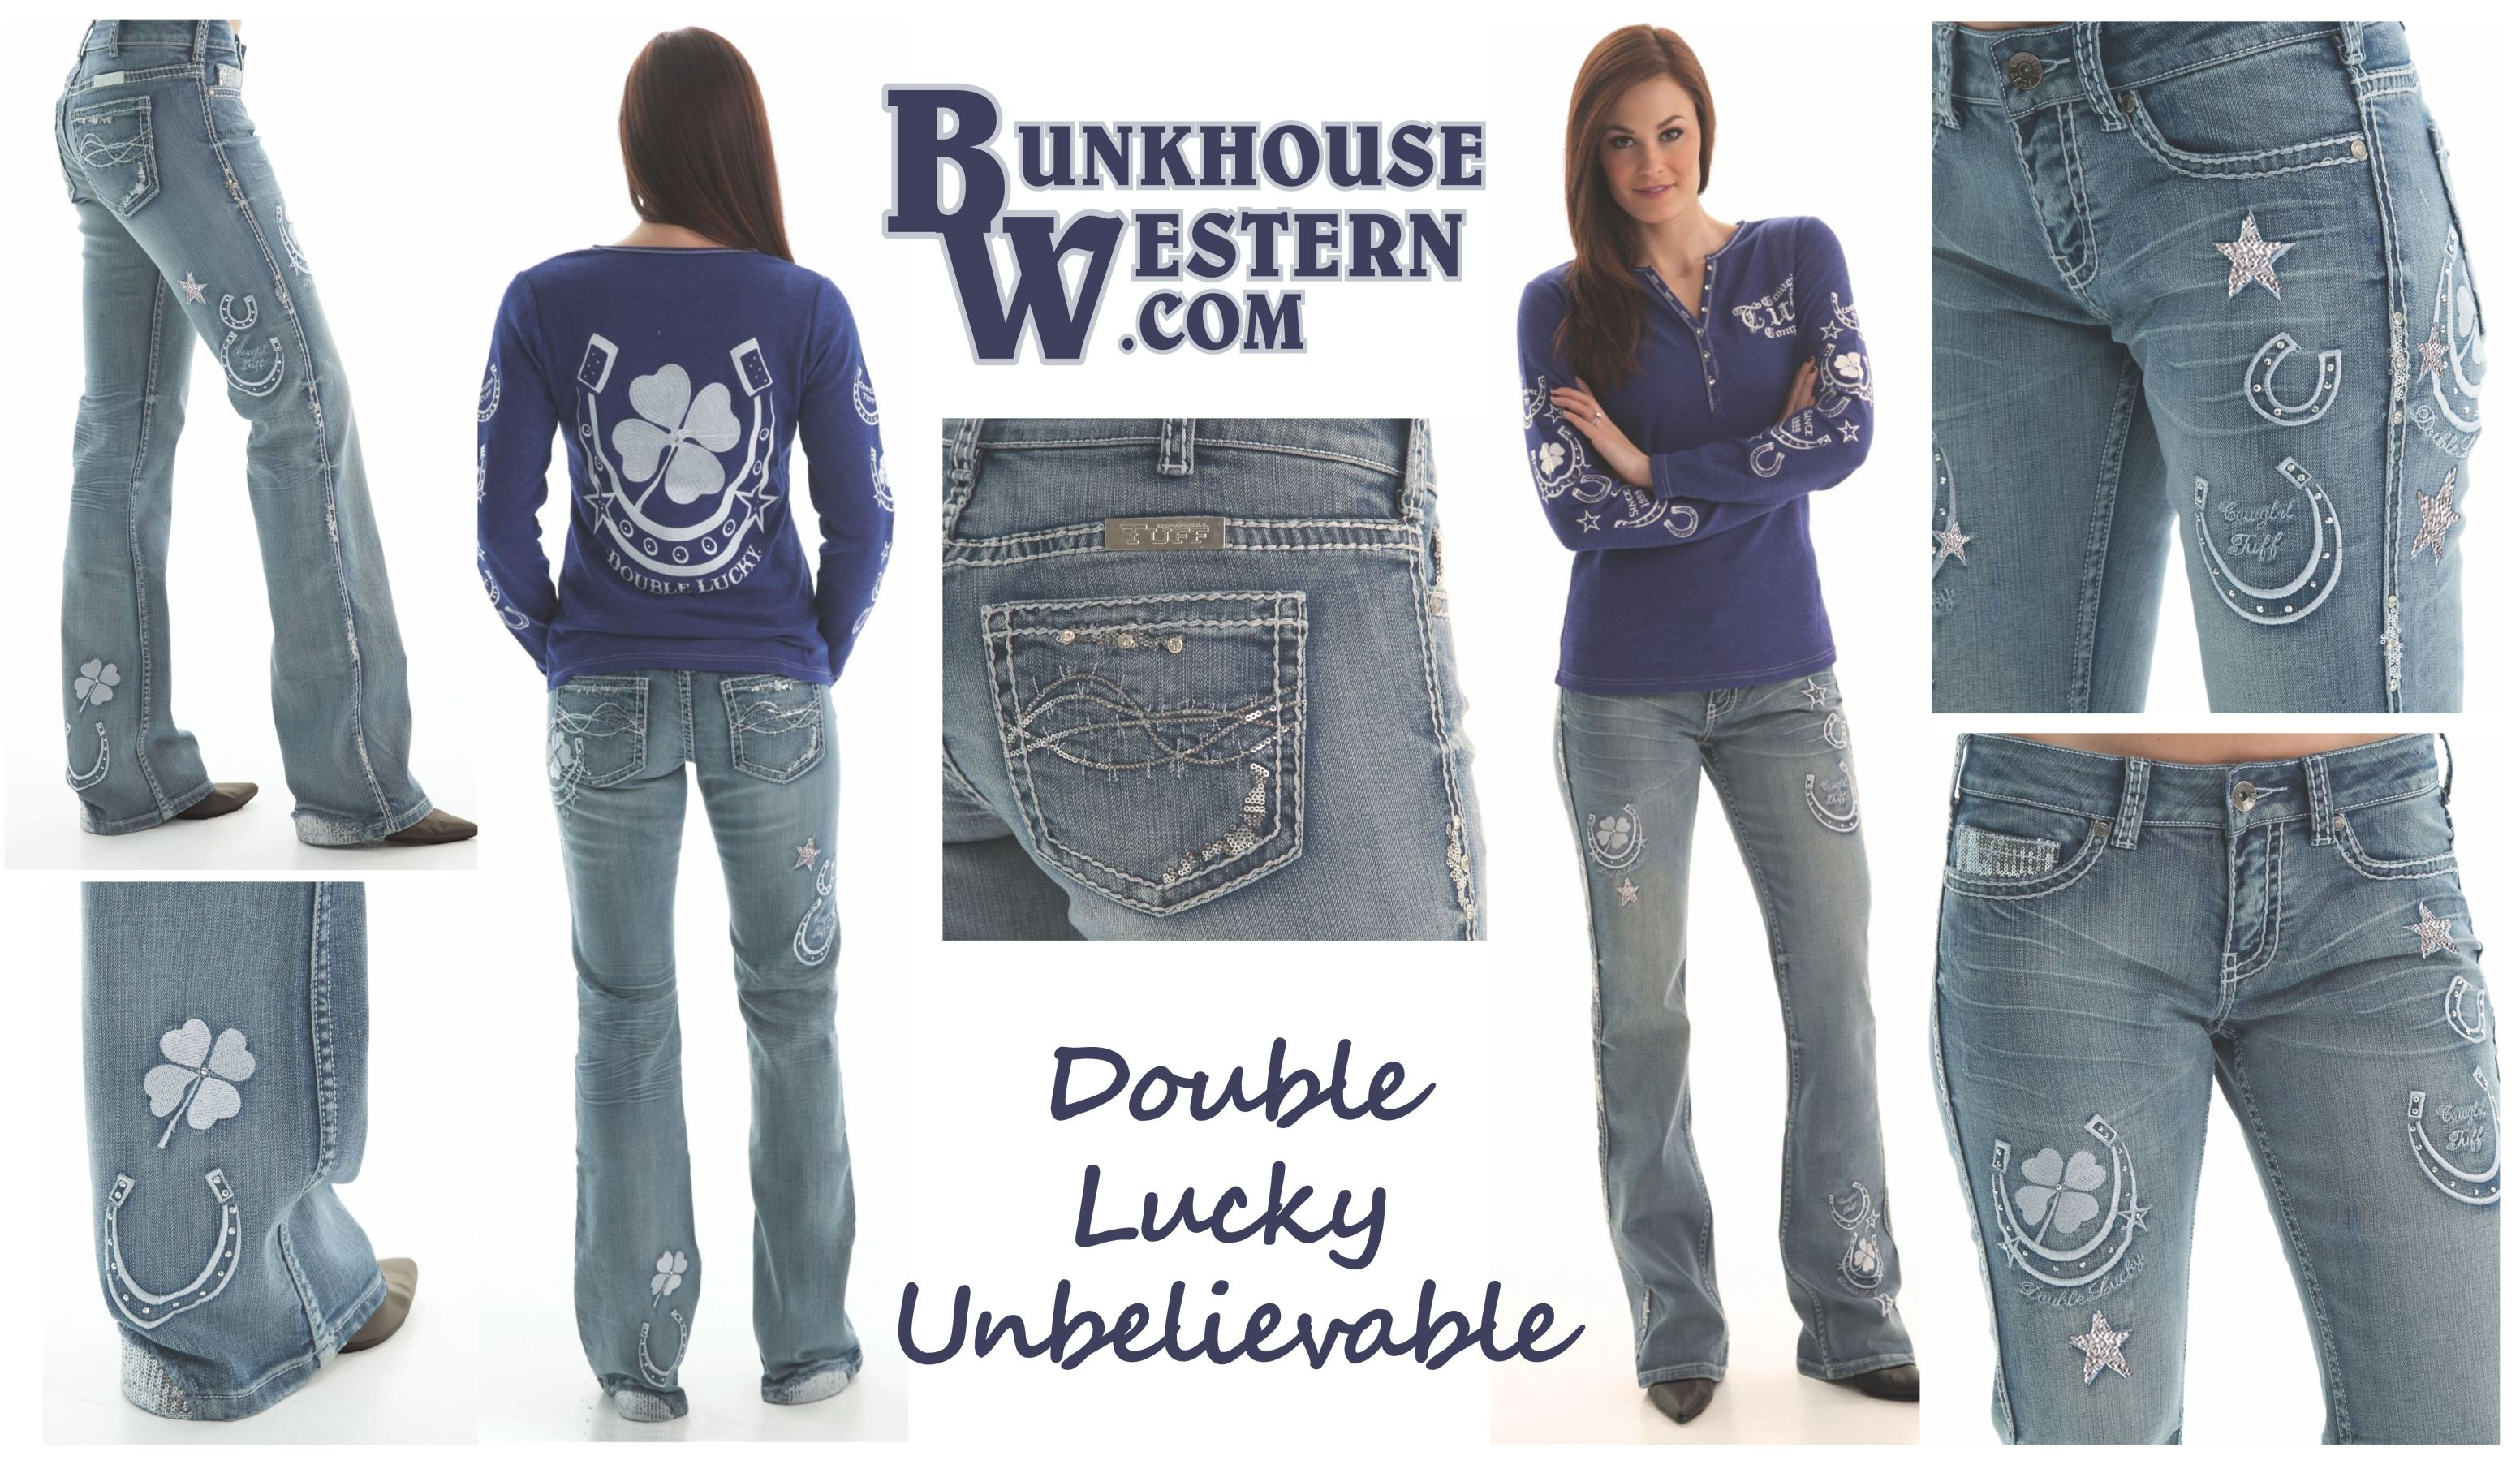 00d7fae6342 Cowgirl Tuff, Double Lucky UnBELIEVEable Jeans, Horseshoe, Cloverleaf,  Never Give Up,